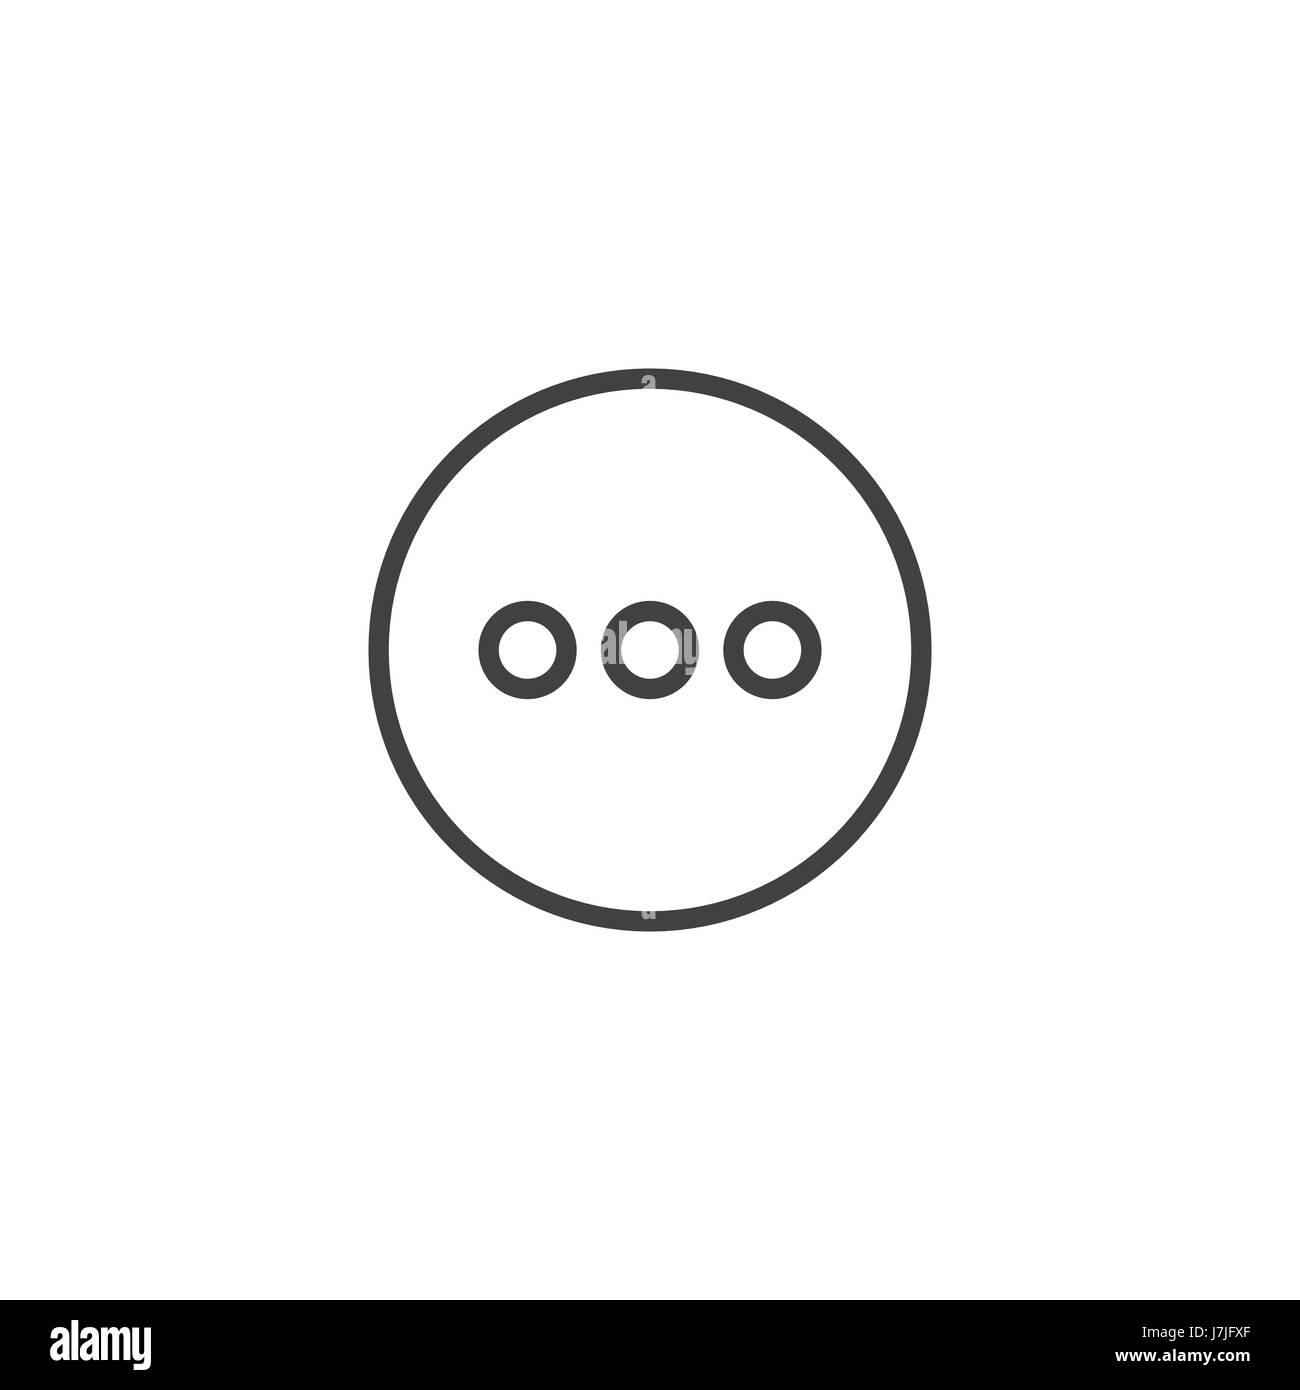 Load more icon - Thinking or Loading Icon - Stock Image